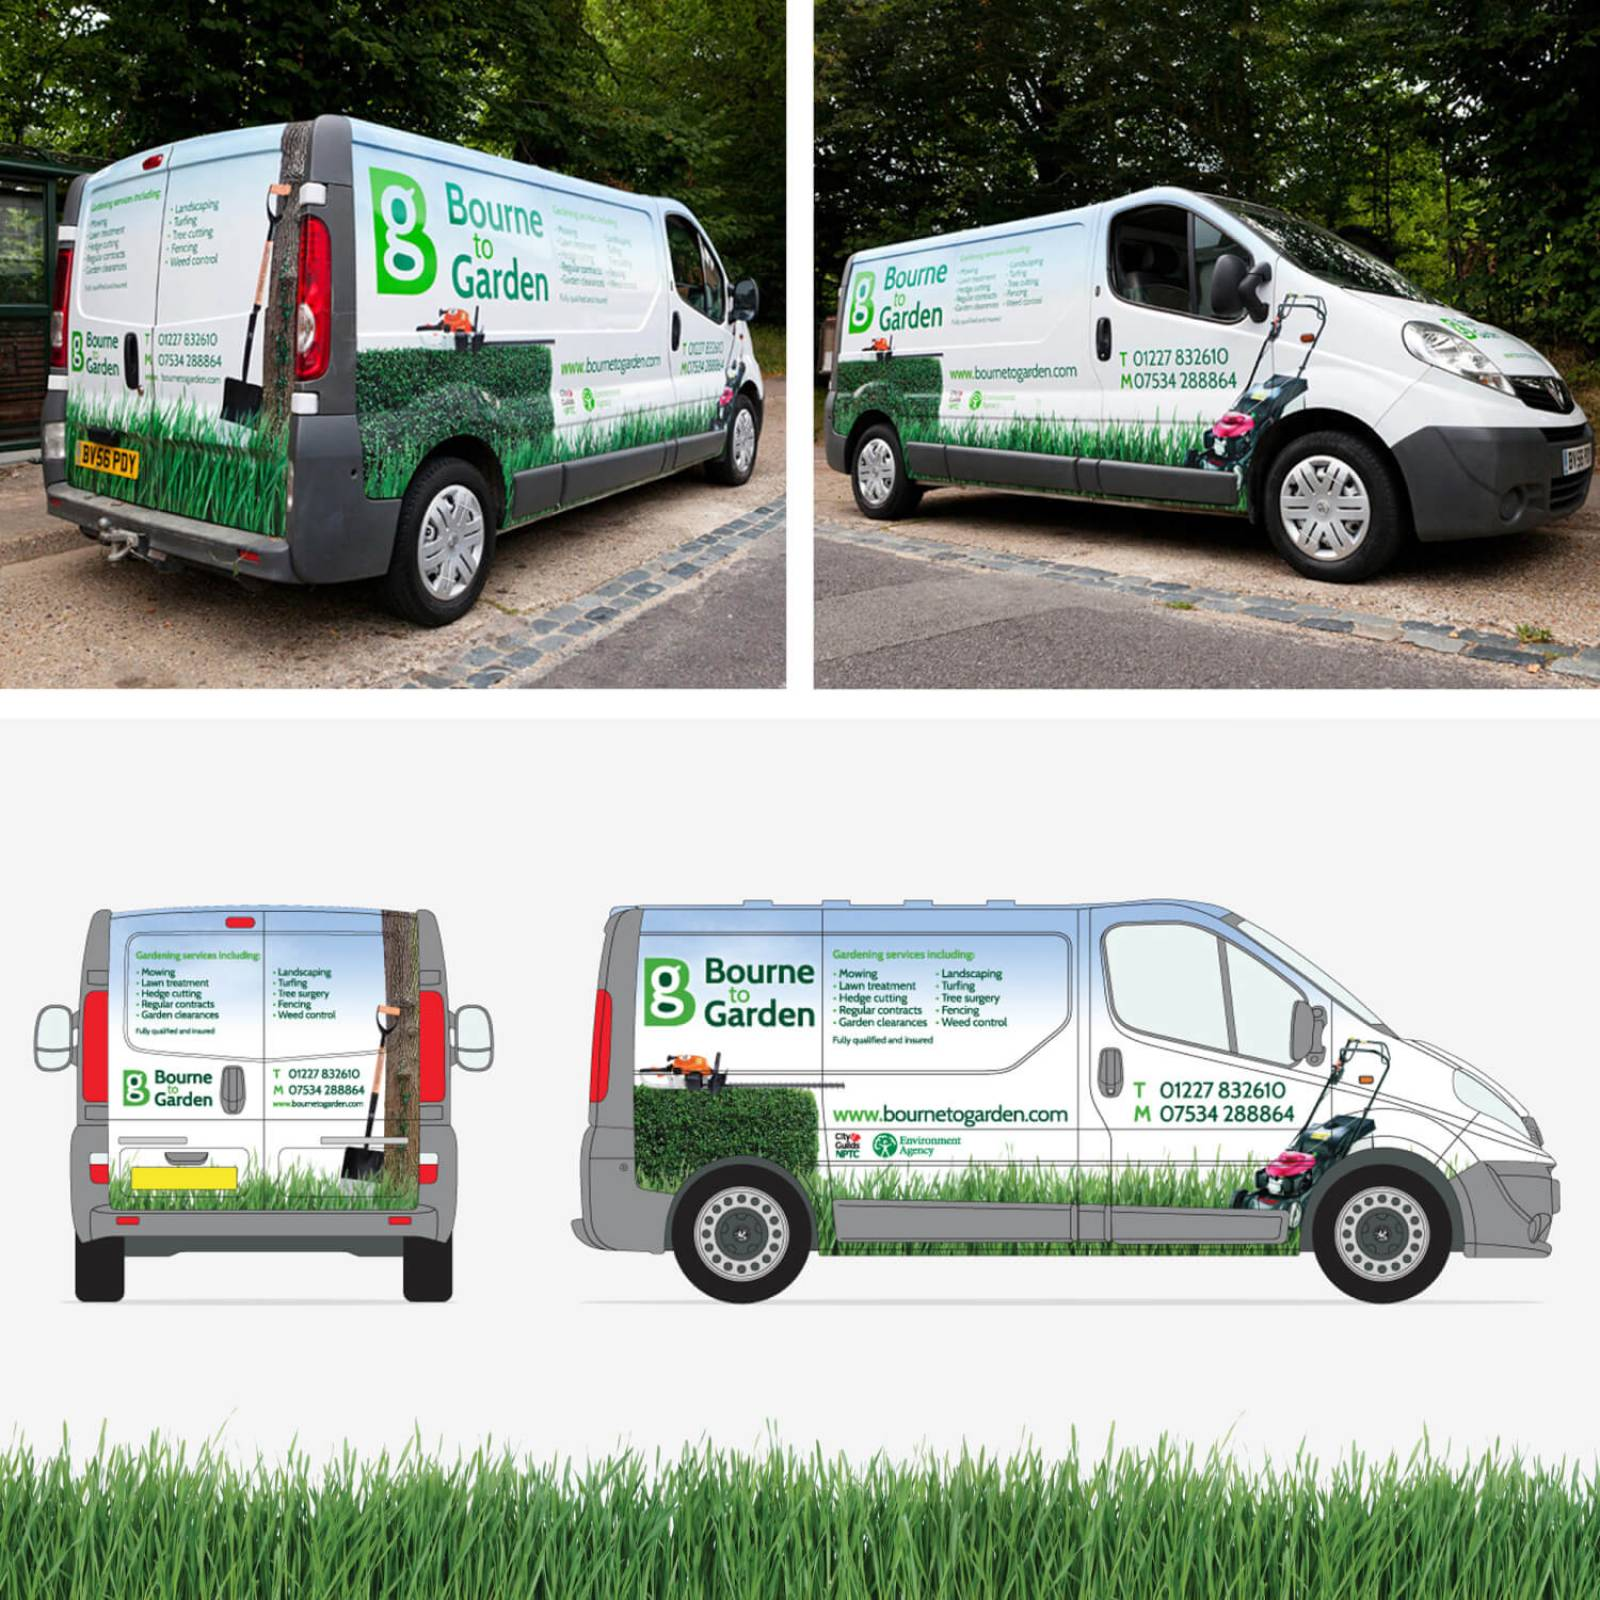 Vehicle-4-Bourne-Canterbury-Graphic-Design.jpg